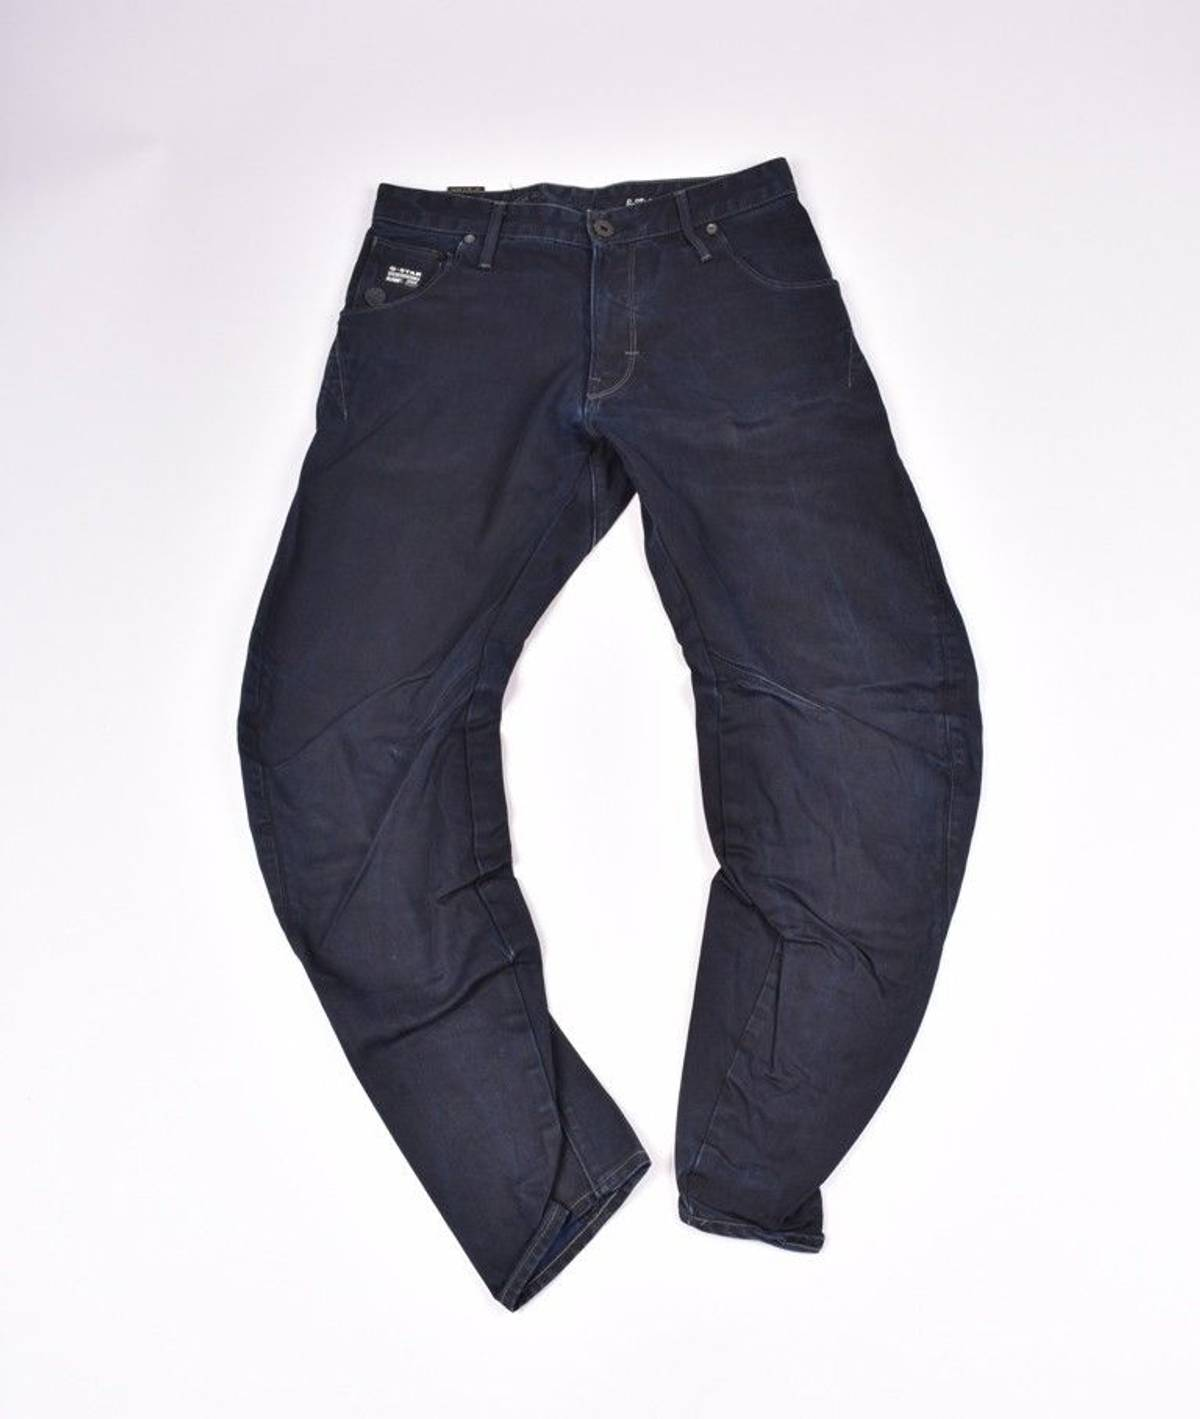 050ee9d4ef0 G Star Raw G-star Arc Loose Tapered Men Jeans Size 30/30, Genuine ...